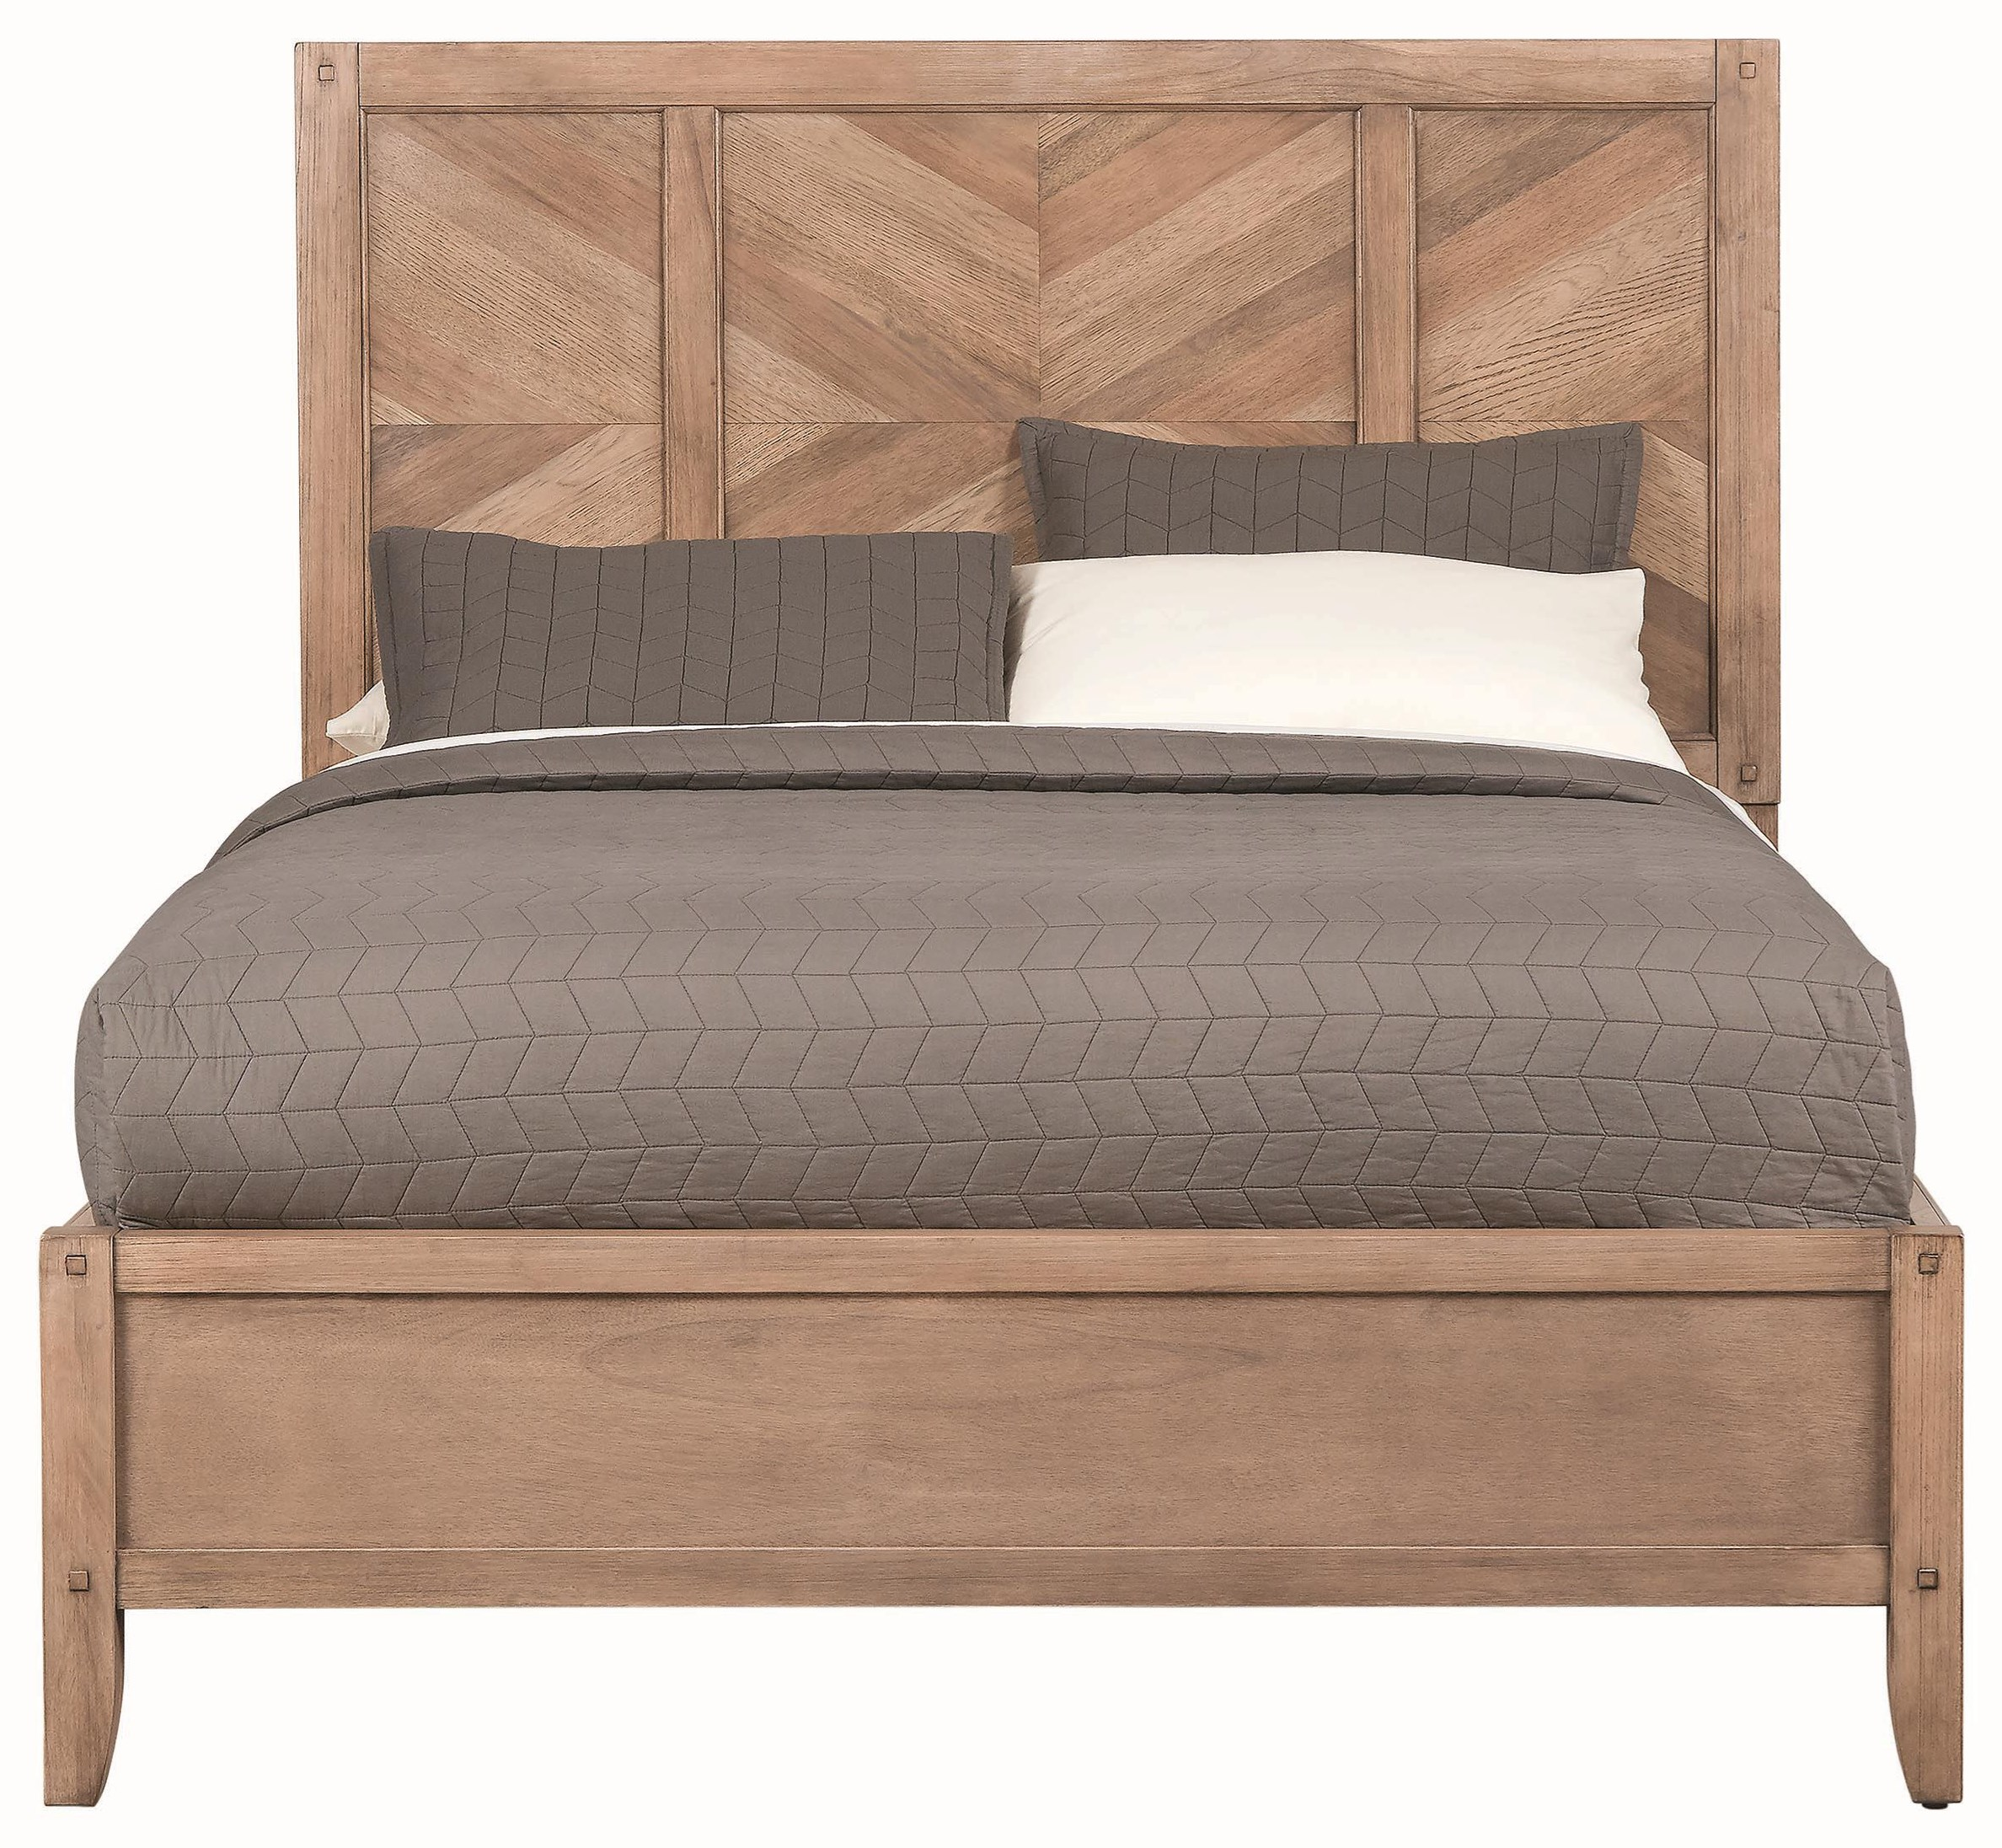 Scott Living Auburn King Bed - Item Number: 204611KE